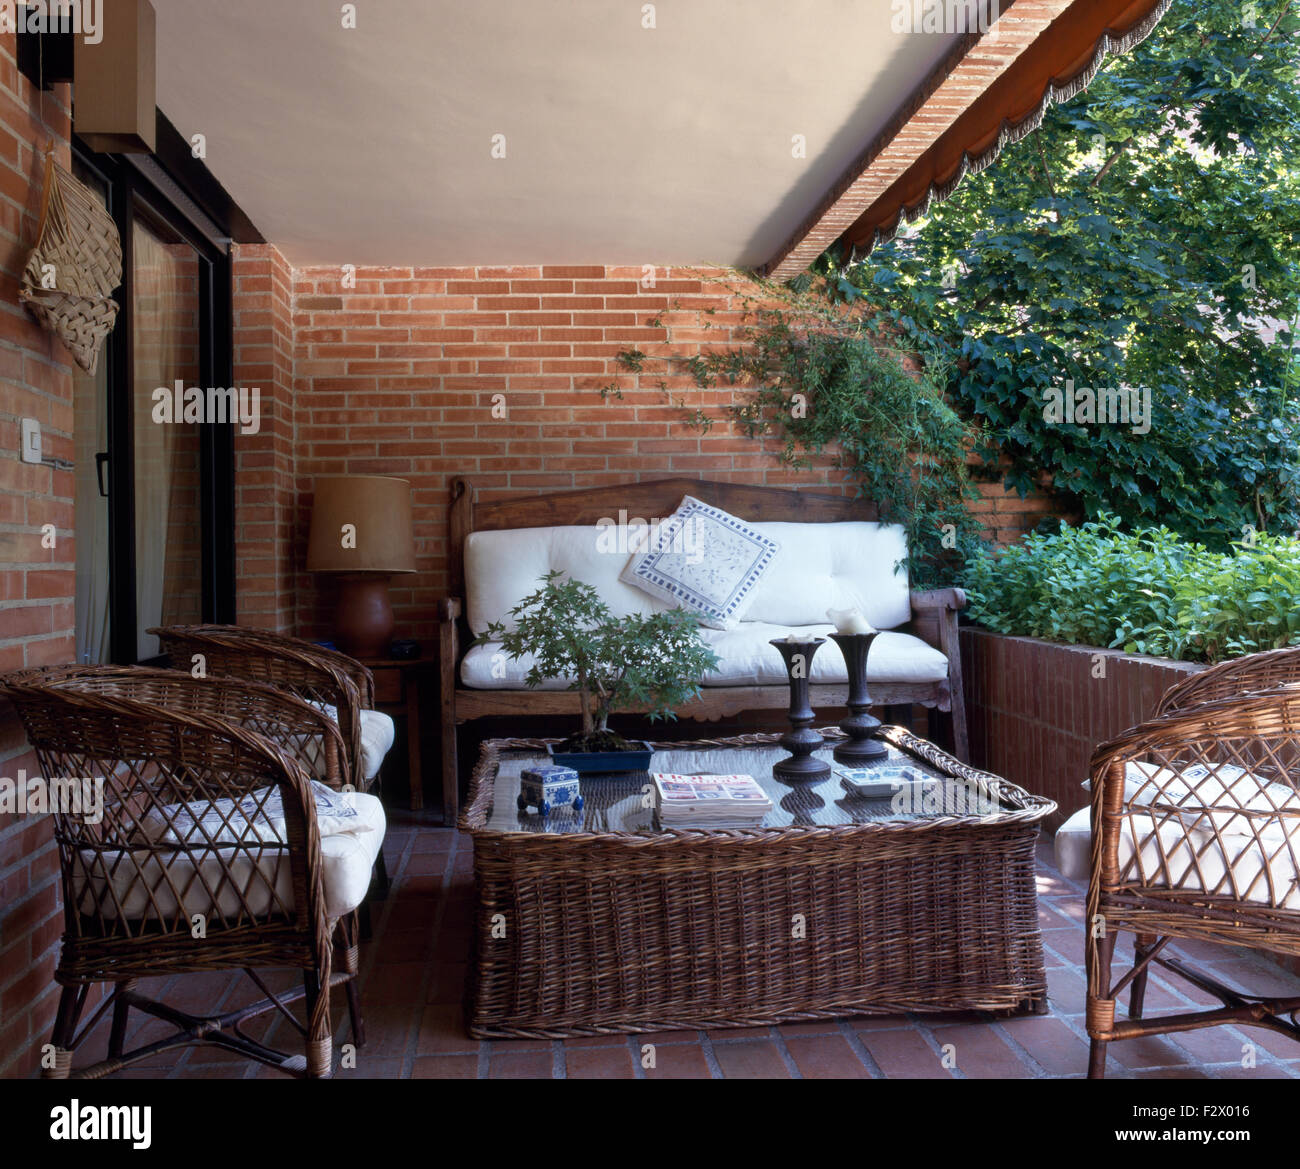 Wicker Chairs And Coffee Table On Veranda Of Spanish Villa With White Stock Photo Alamy